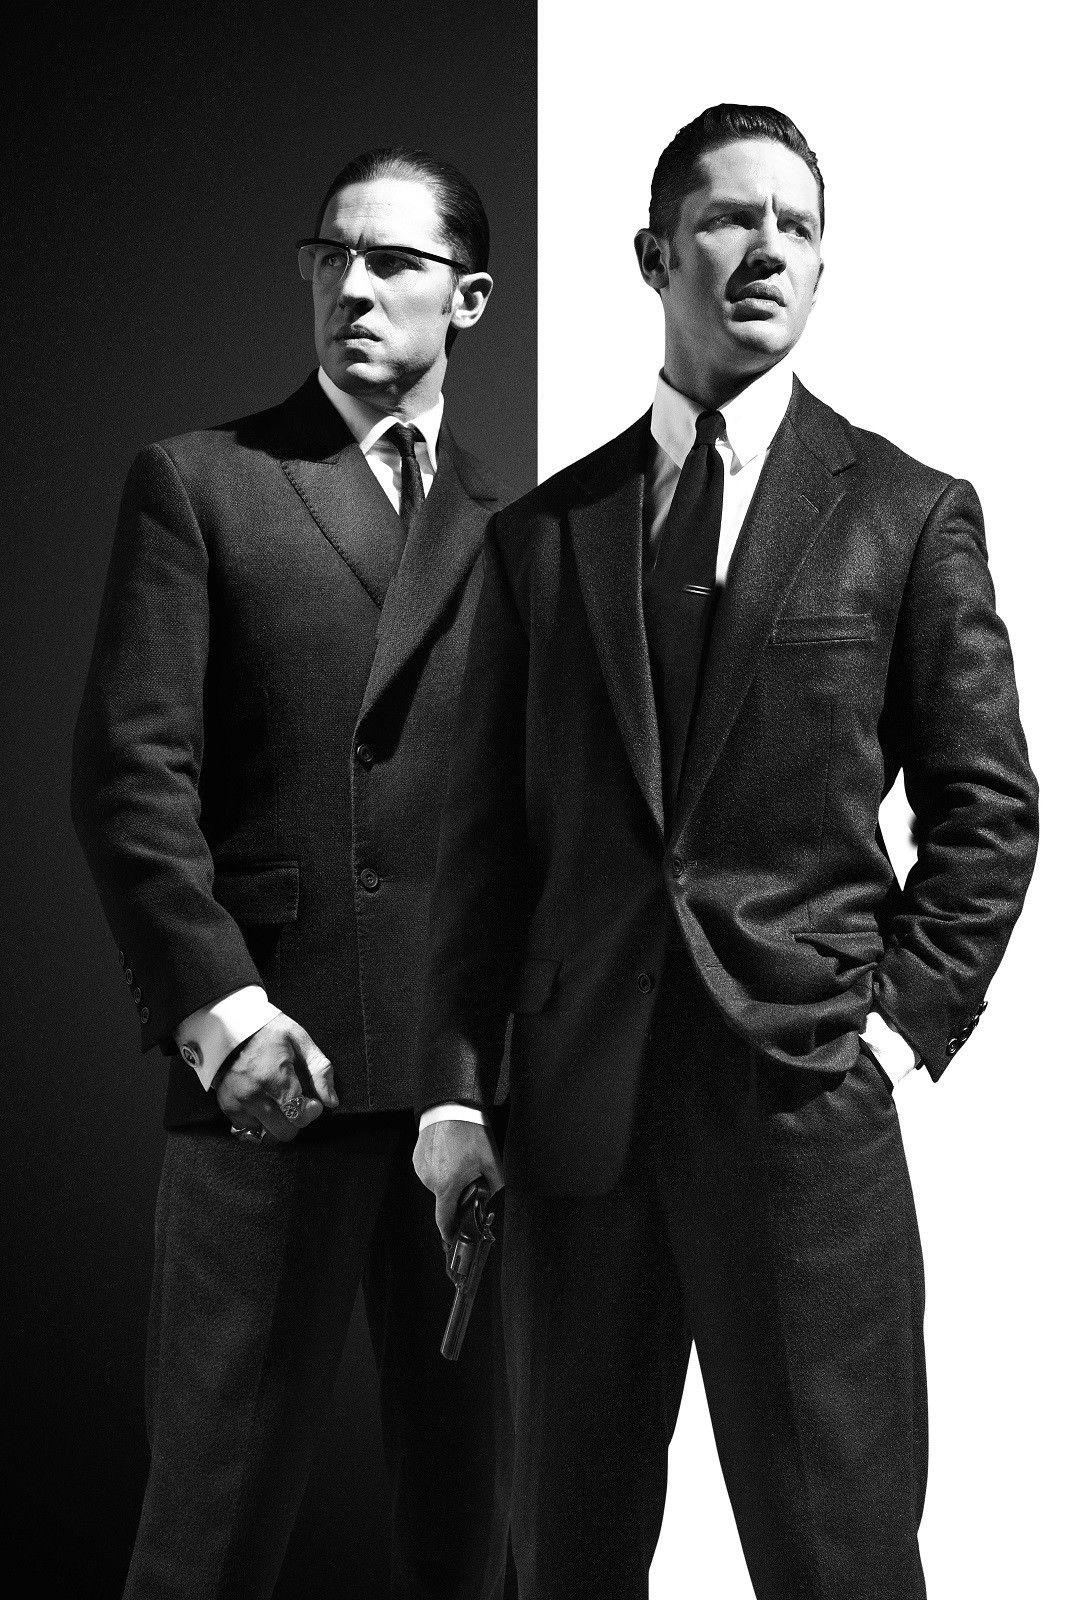 2019 legend tom hardy black and white movie poster art silk poster 20x30 24x36 24x43 from chuy8988 10 93 dhgate com